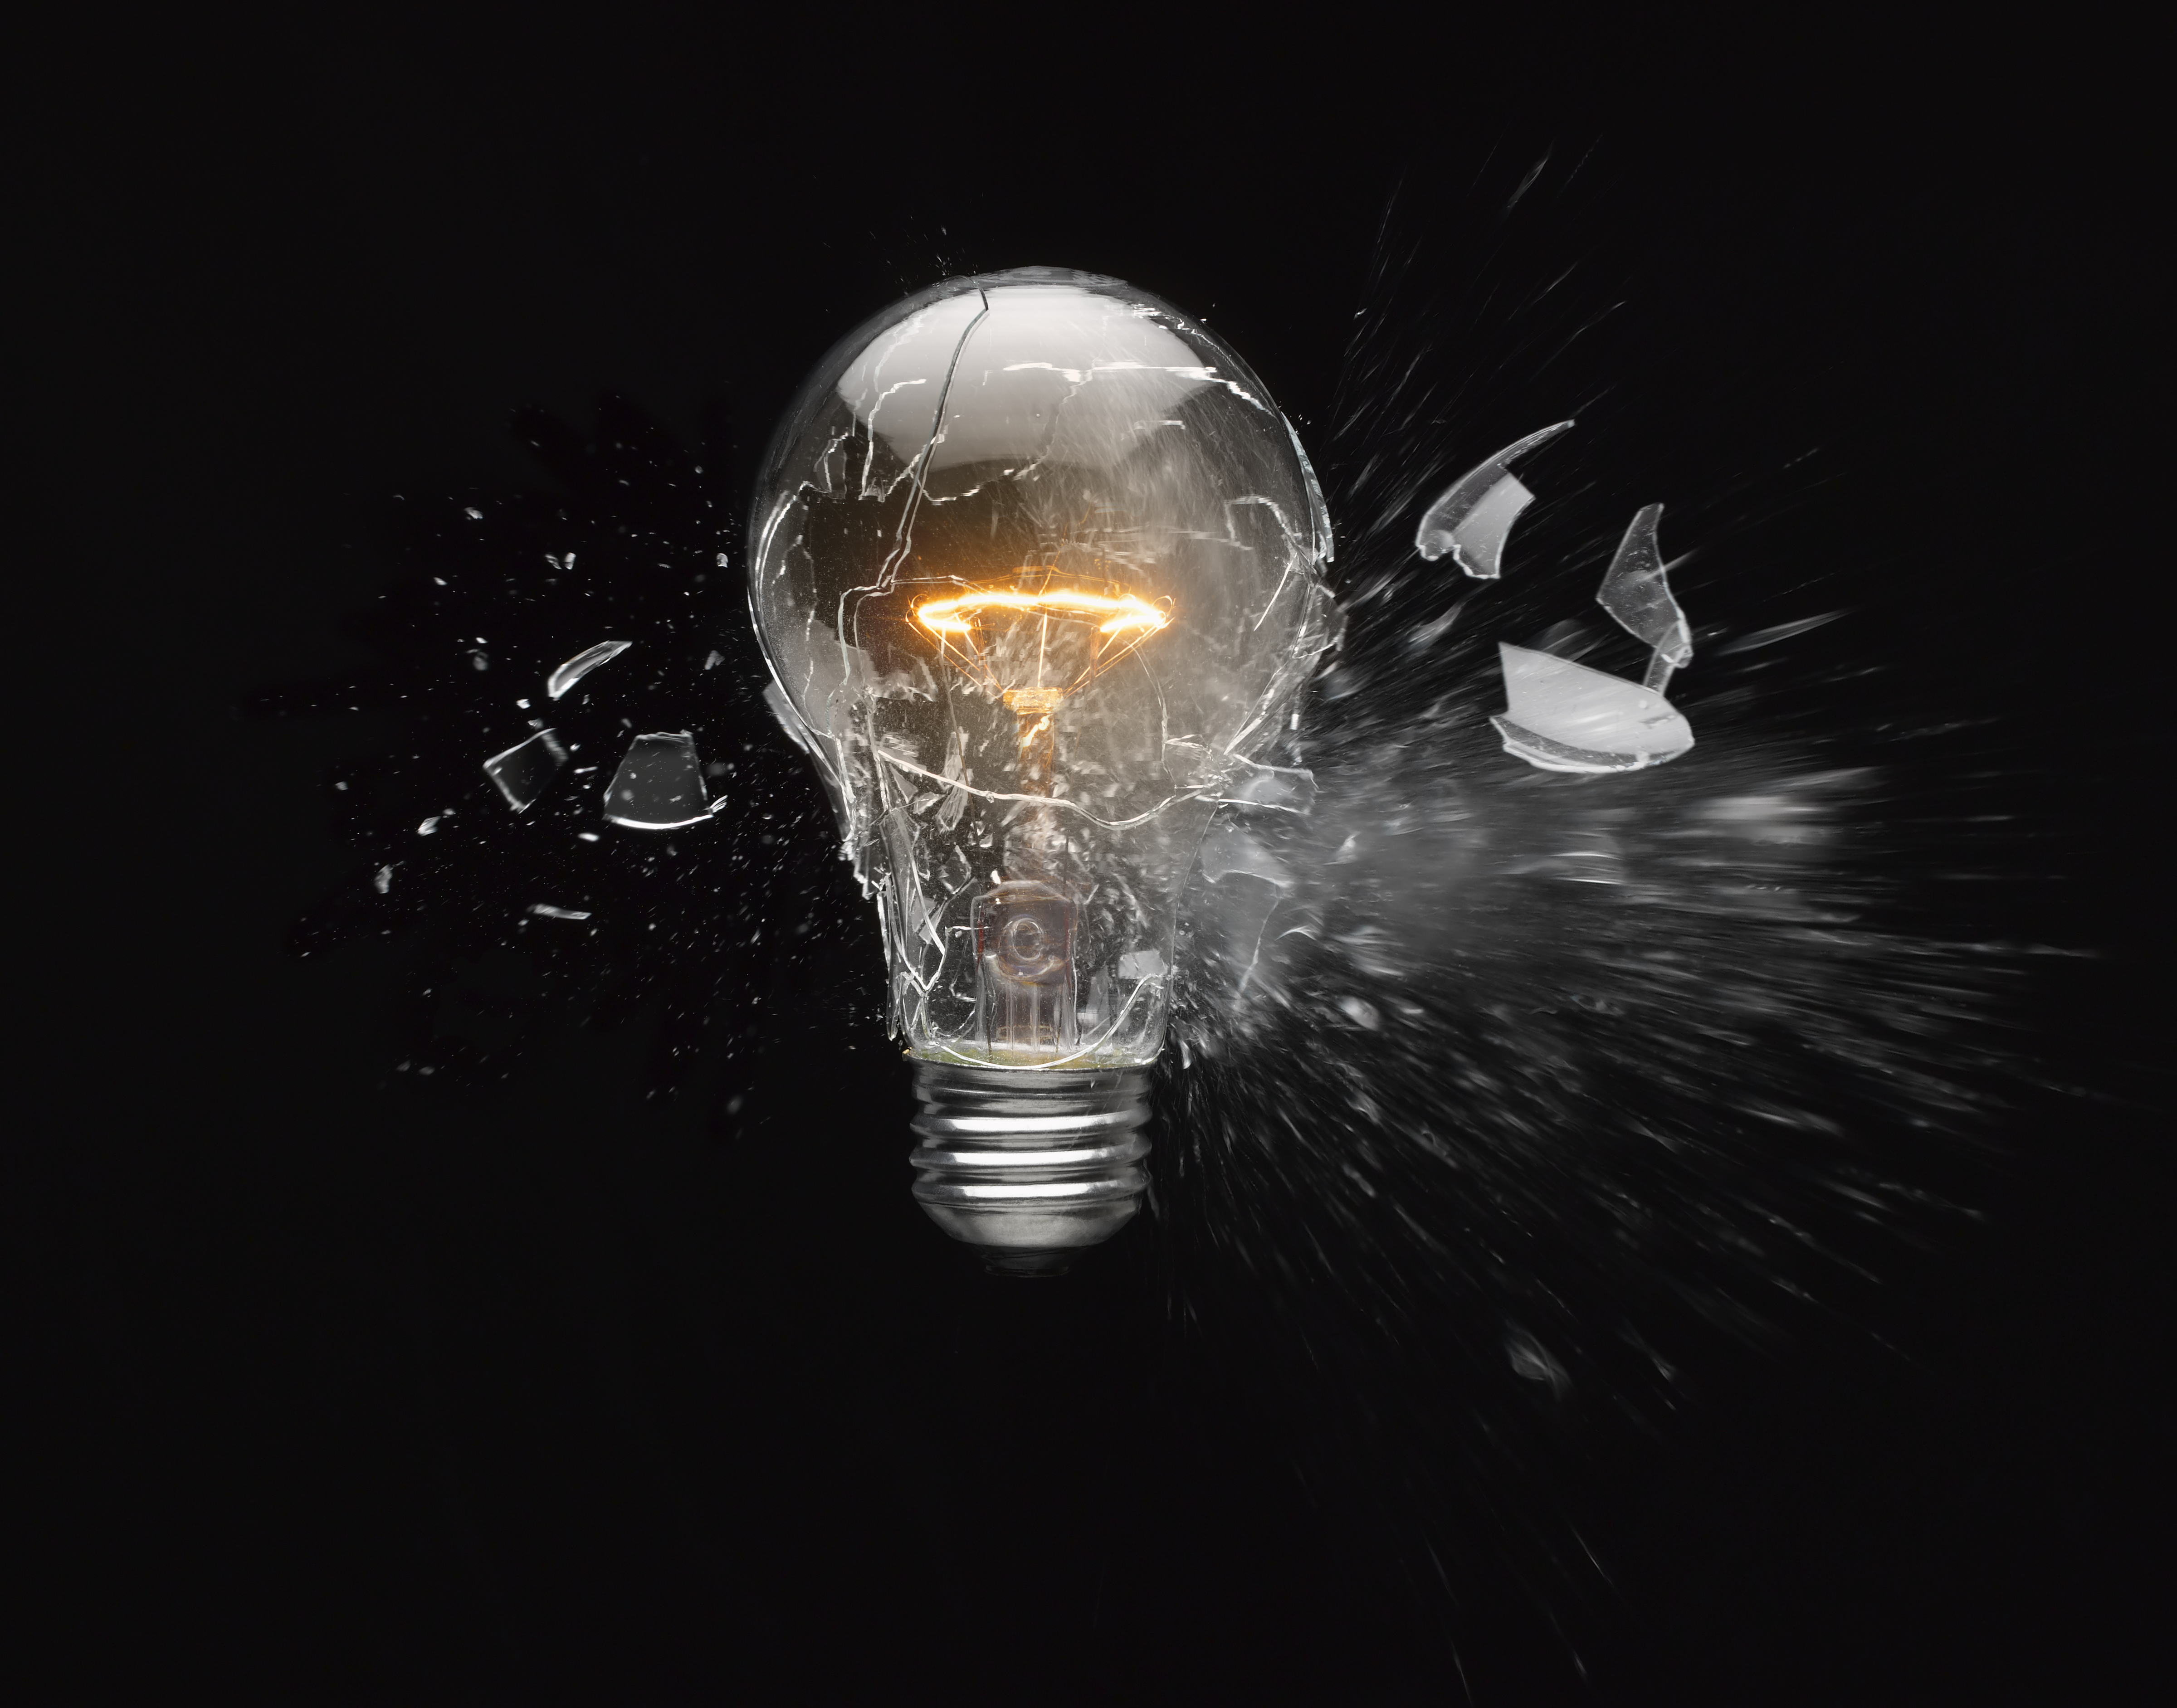 shattered incandescent light bulb